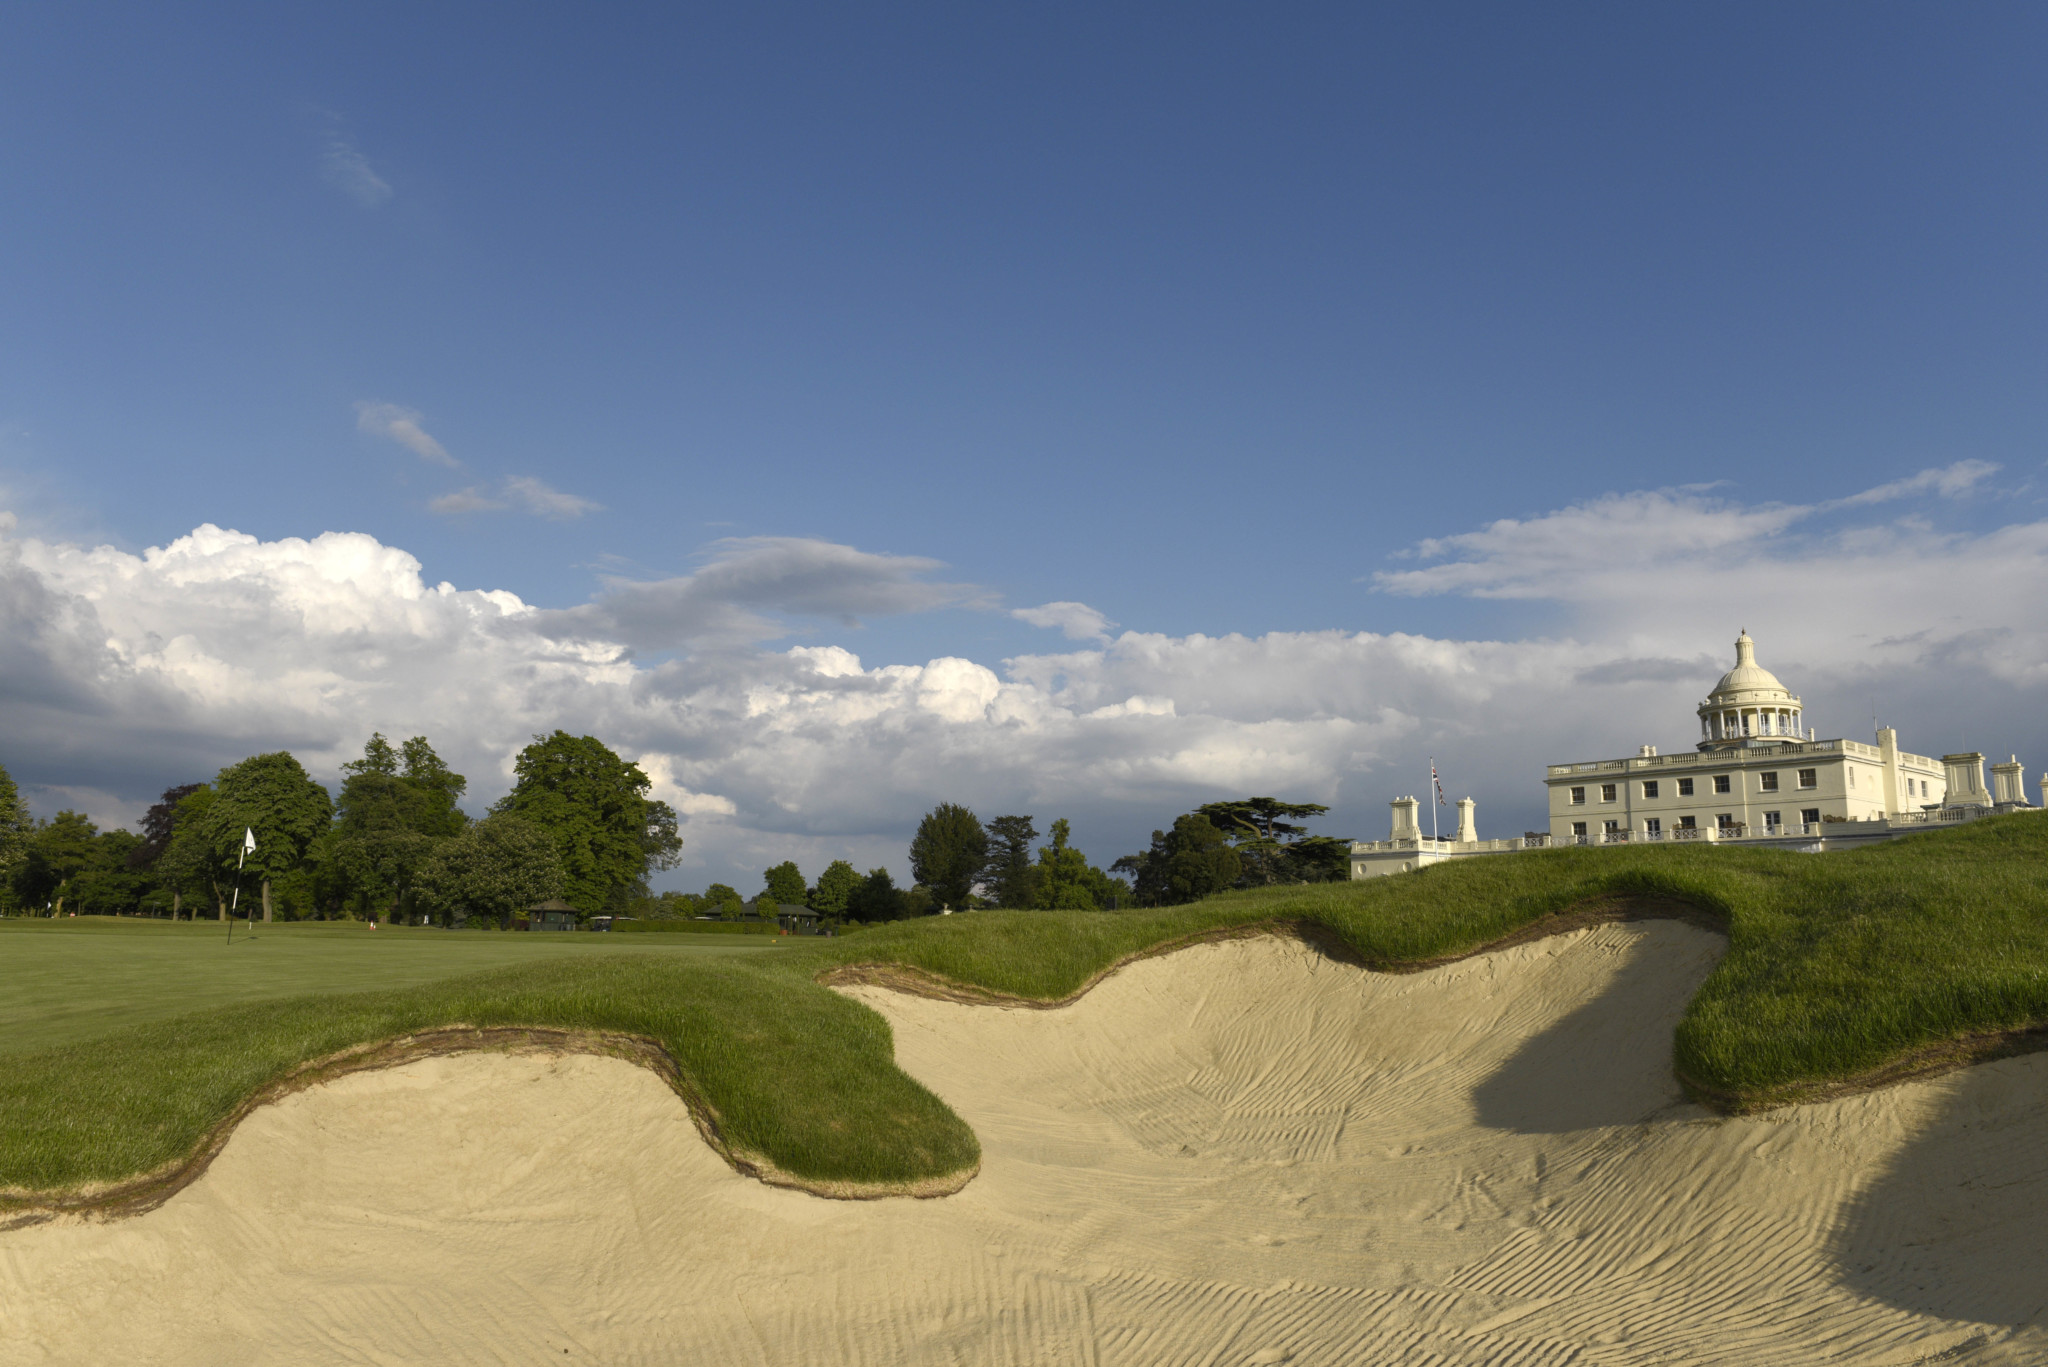 9th par 4 Colt,SPC,Stoke Park Club,Stoke Poges,Bucks, England.